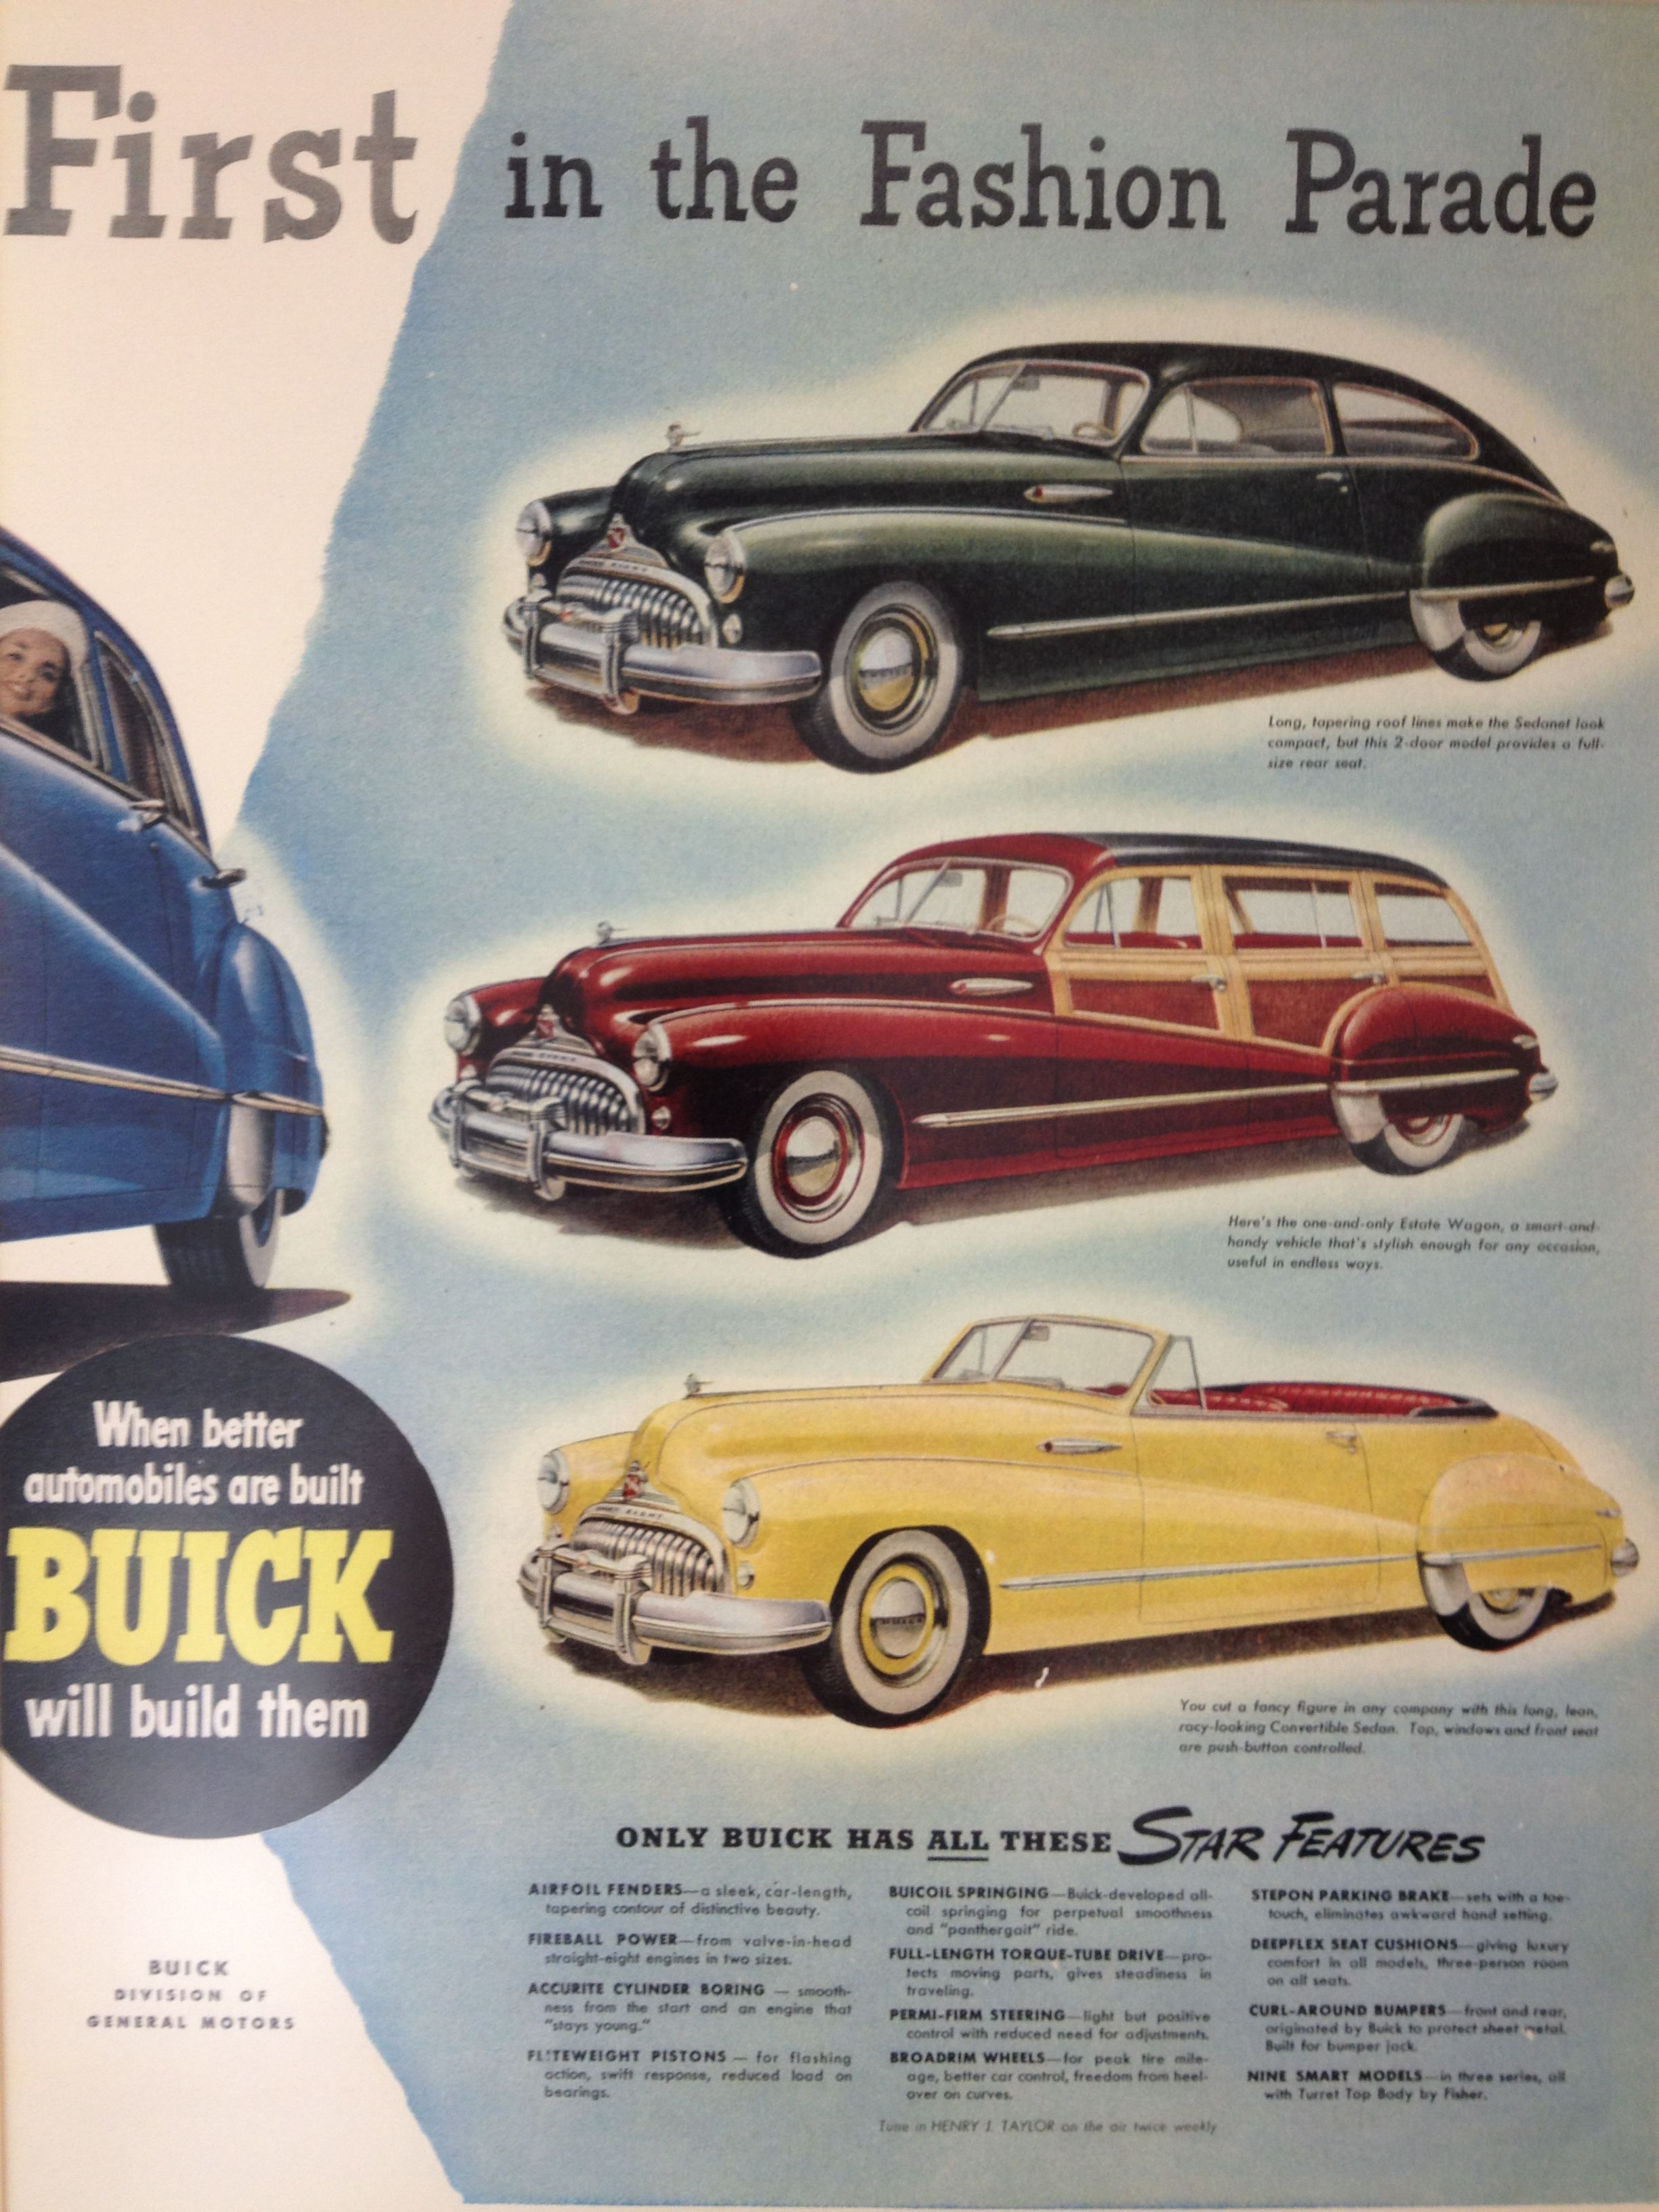 Buick Fashion Parade ad | Vintage Car Ads | Pinterest | Ads, Cars ...